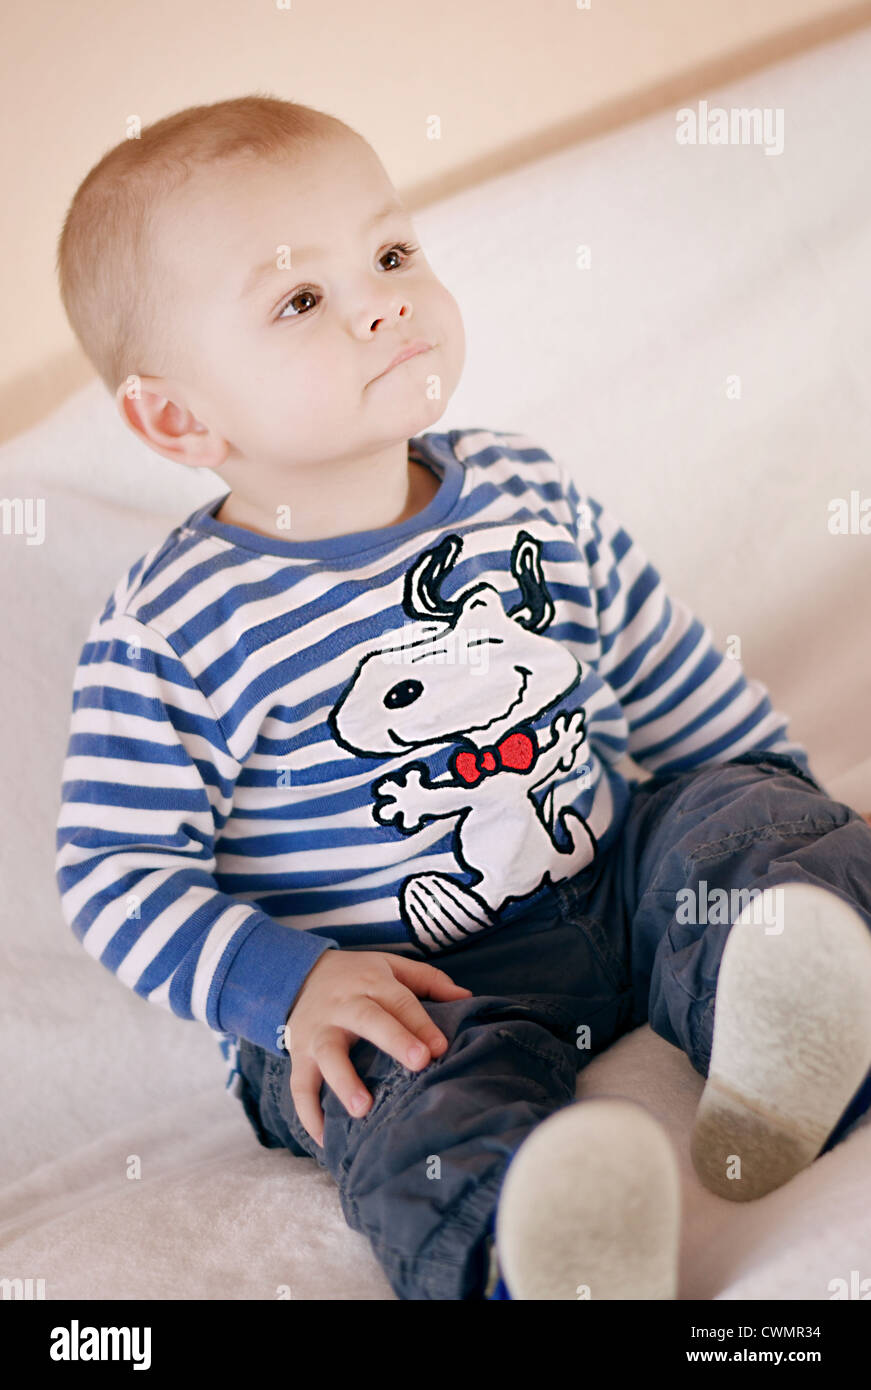 45e0c7b4 Snoopy T Shirt Stock Photos & Snoopy T Shirt Stock Images - Alamy